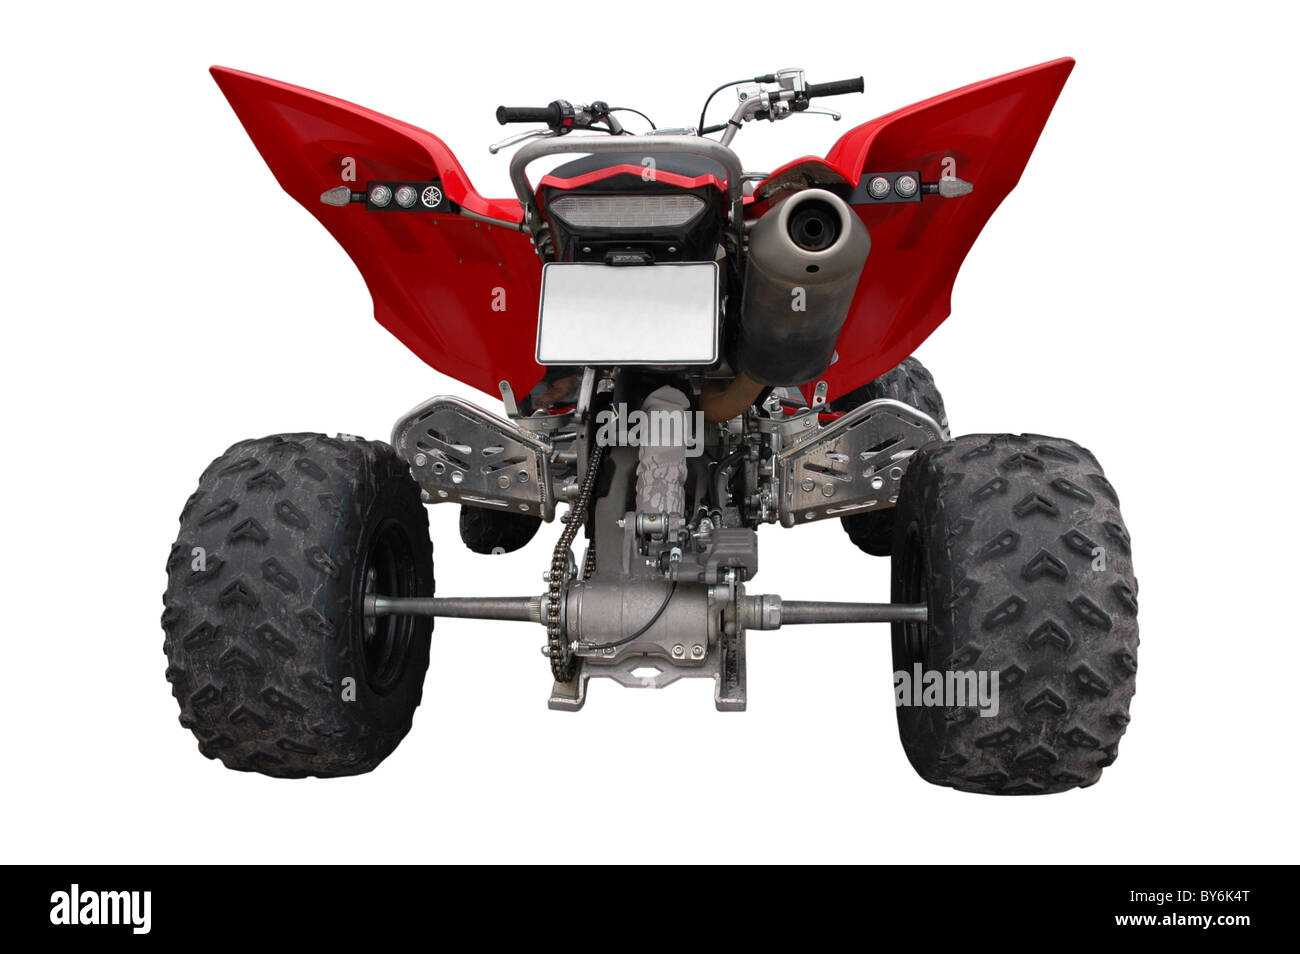 back view of atv quad-bike isolated - Stock Image